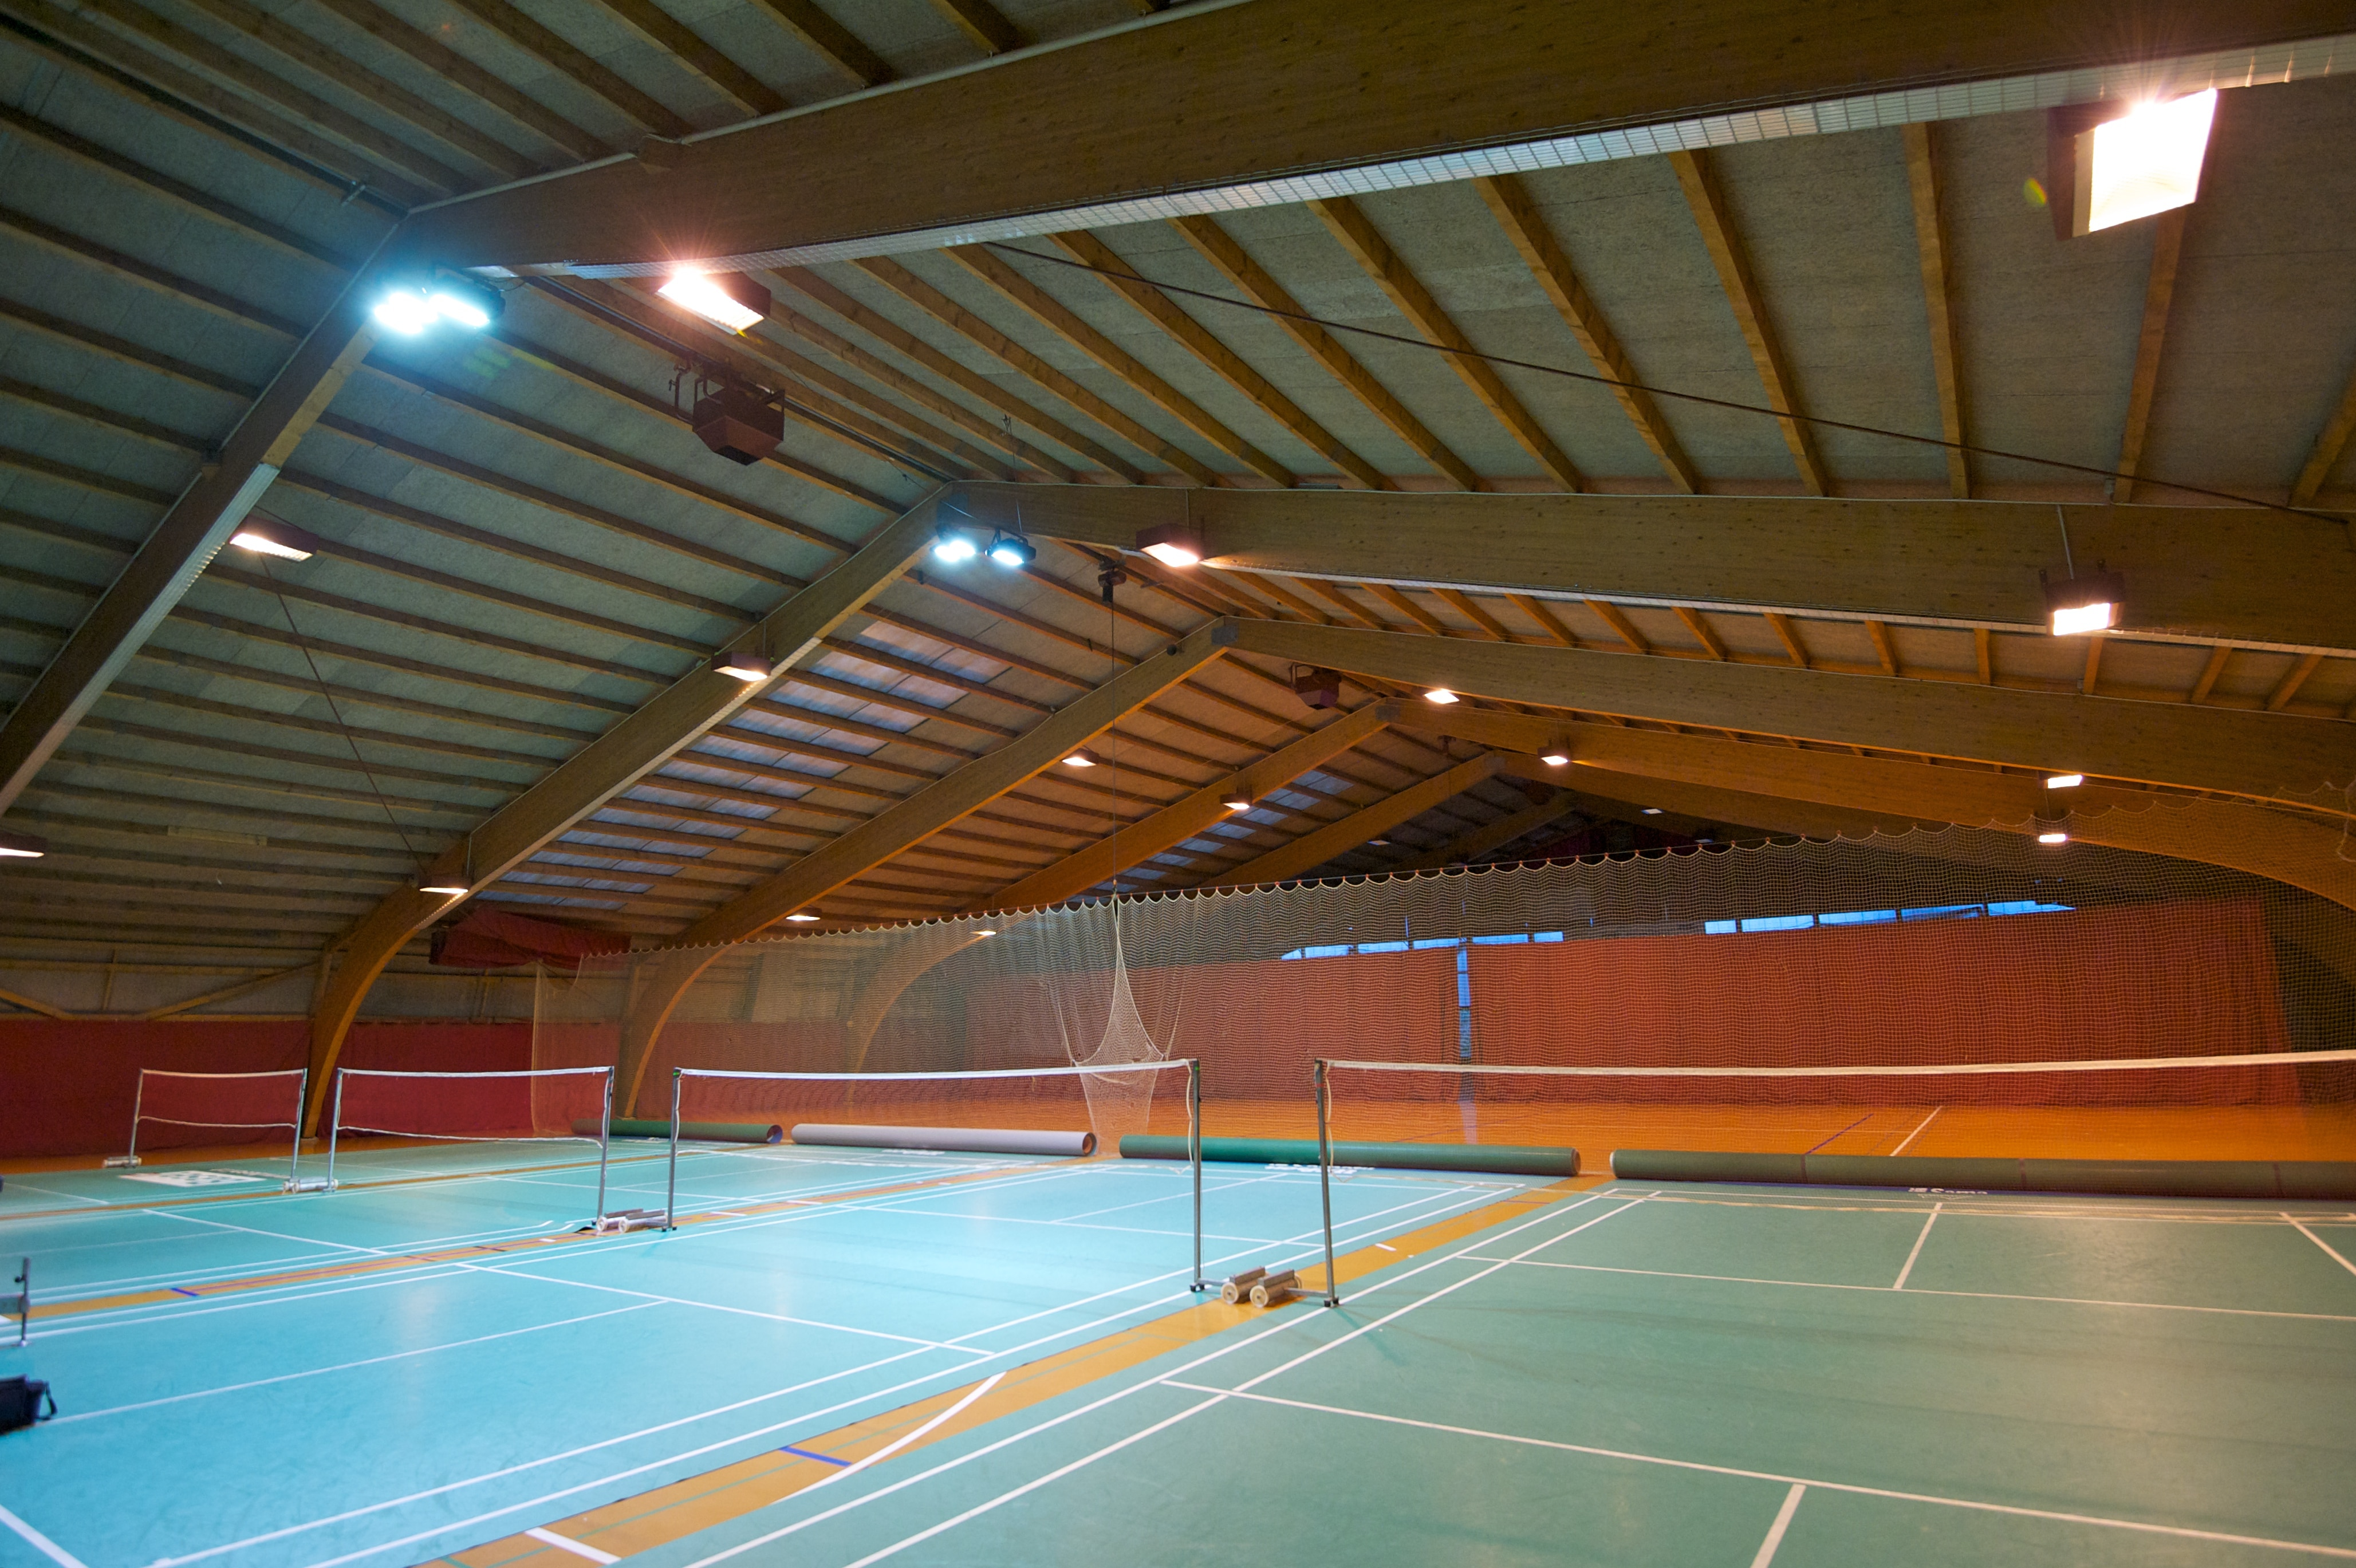 Picture of the tennis court at the Sportcenters Bustelbach